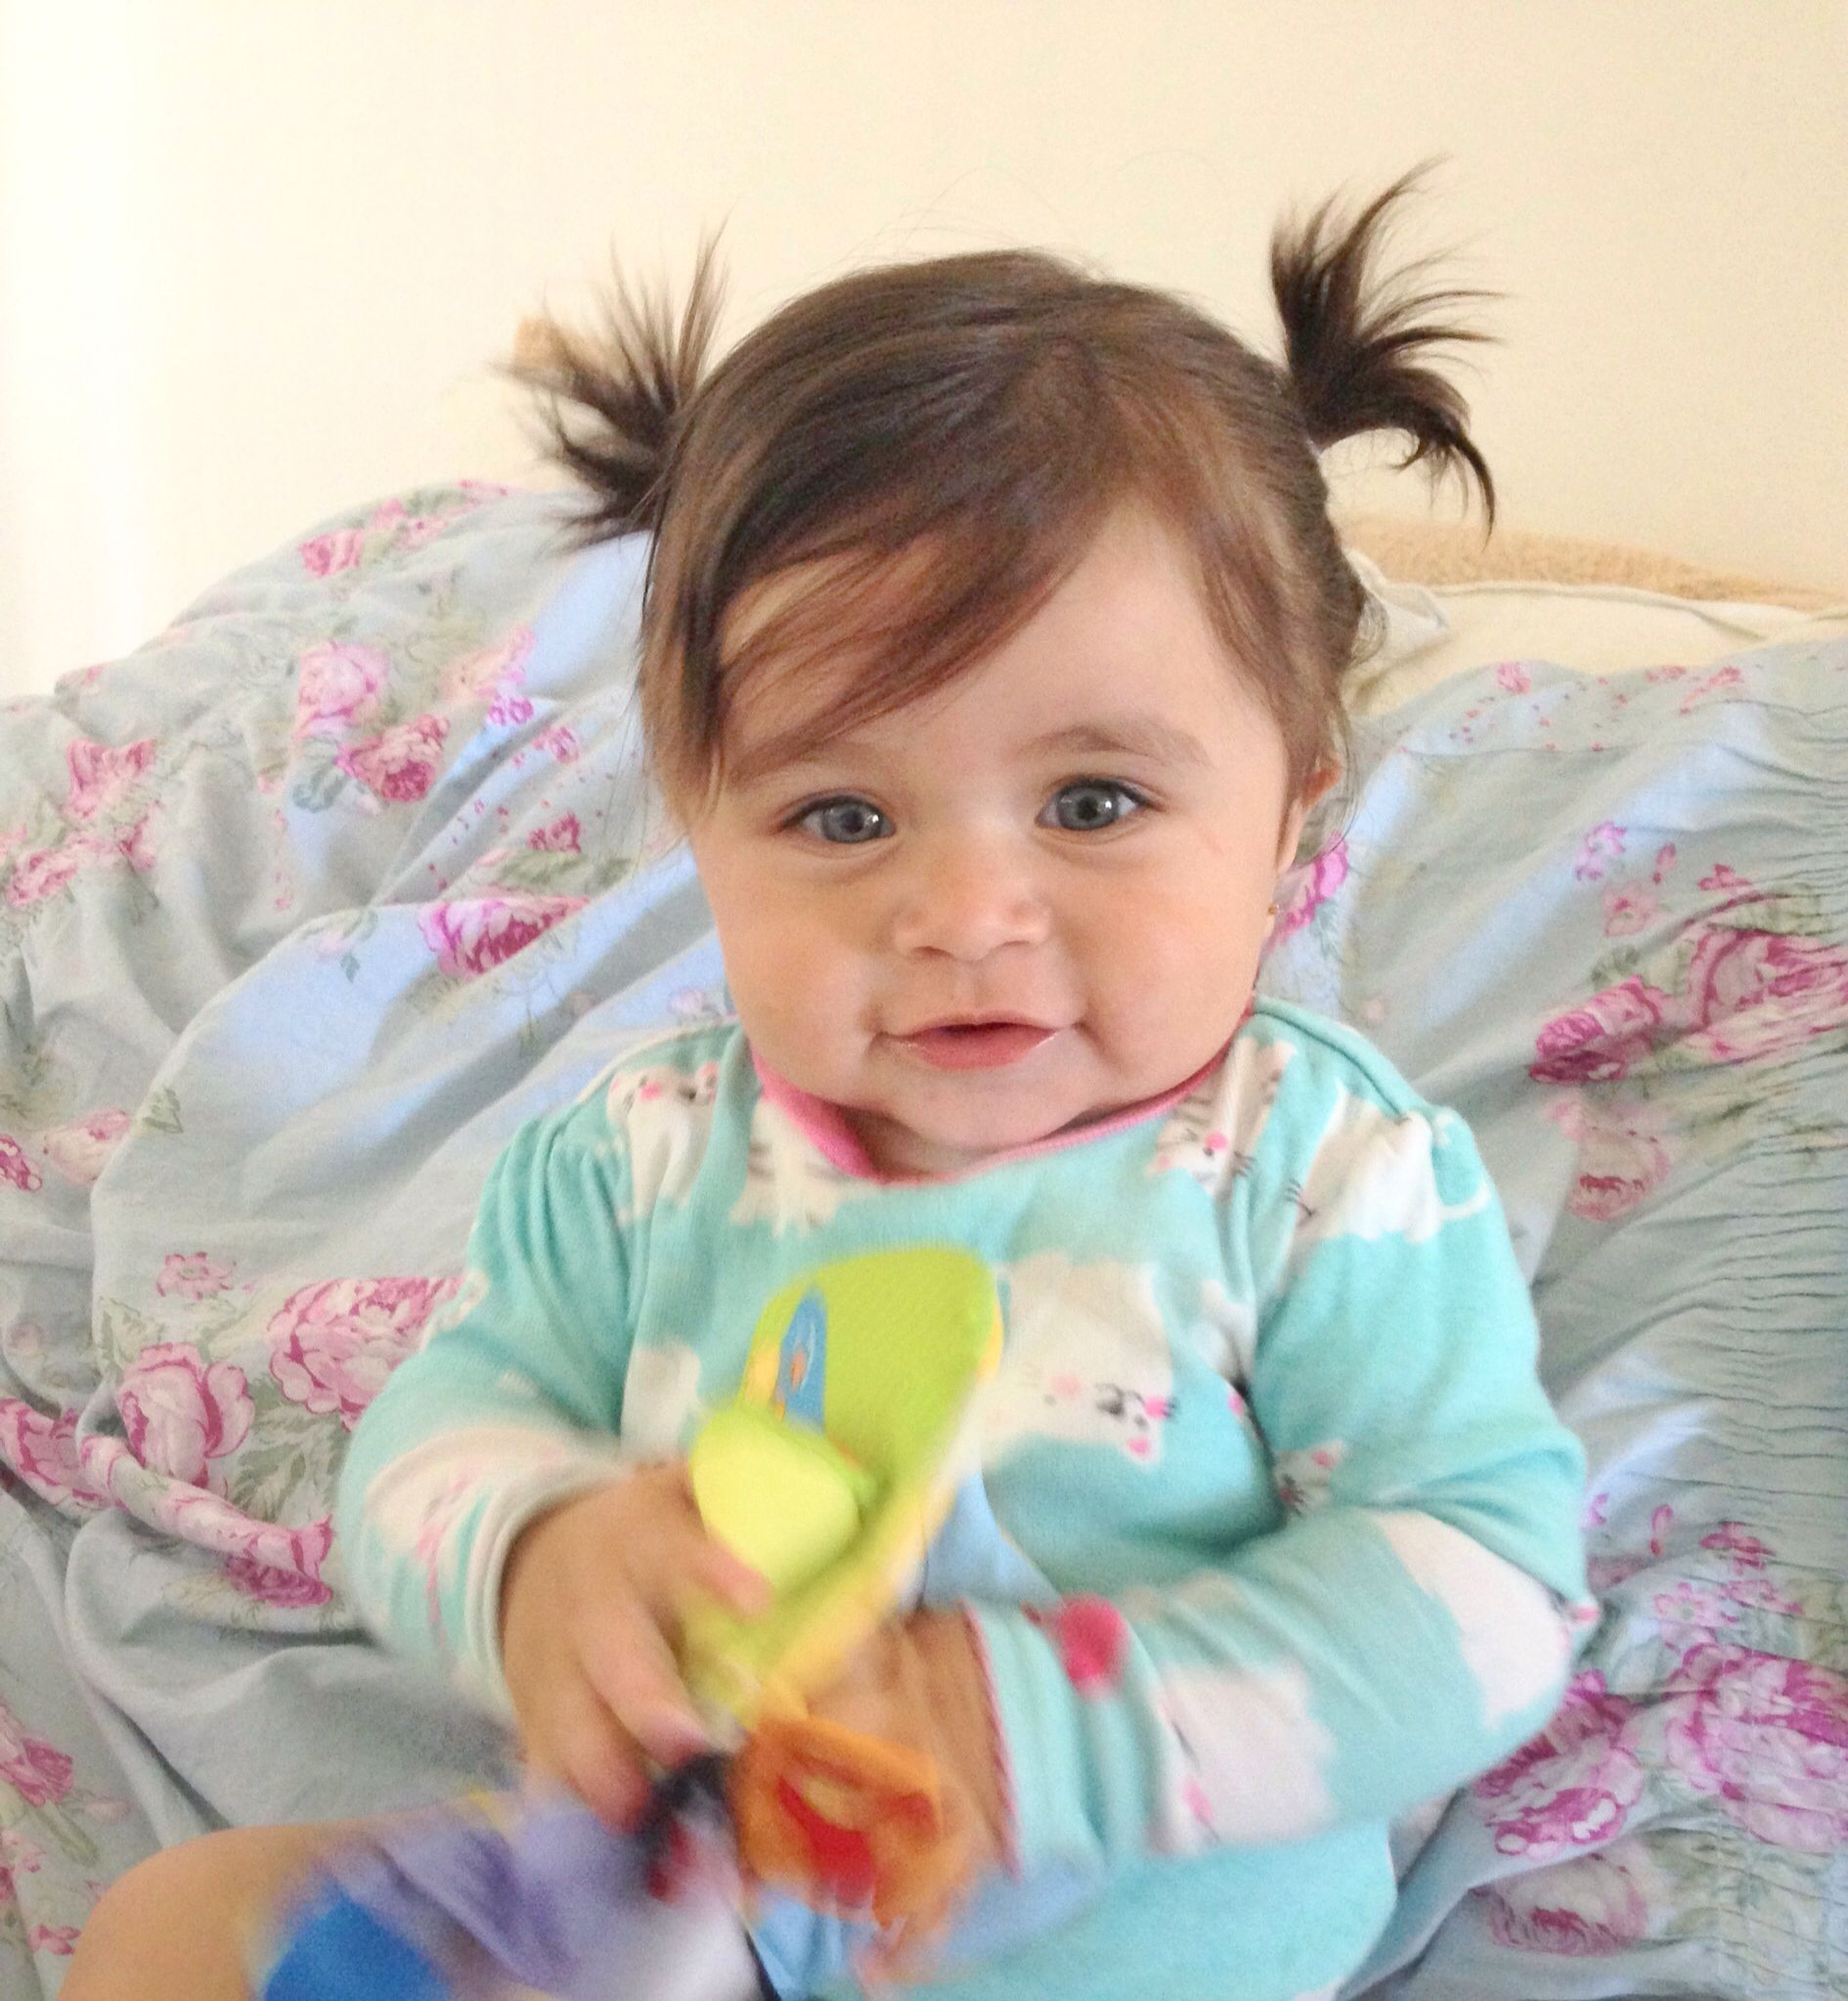 Baby girl hair dos ponytails cute baby hairstyle Pinterest